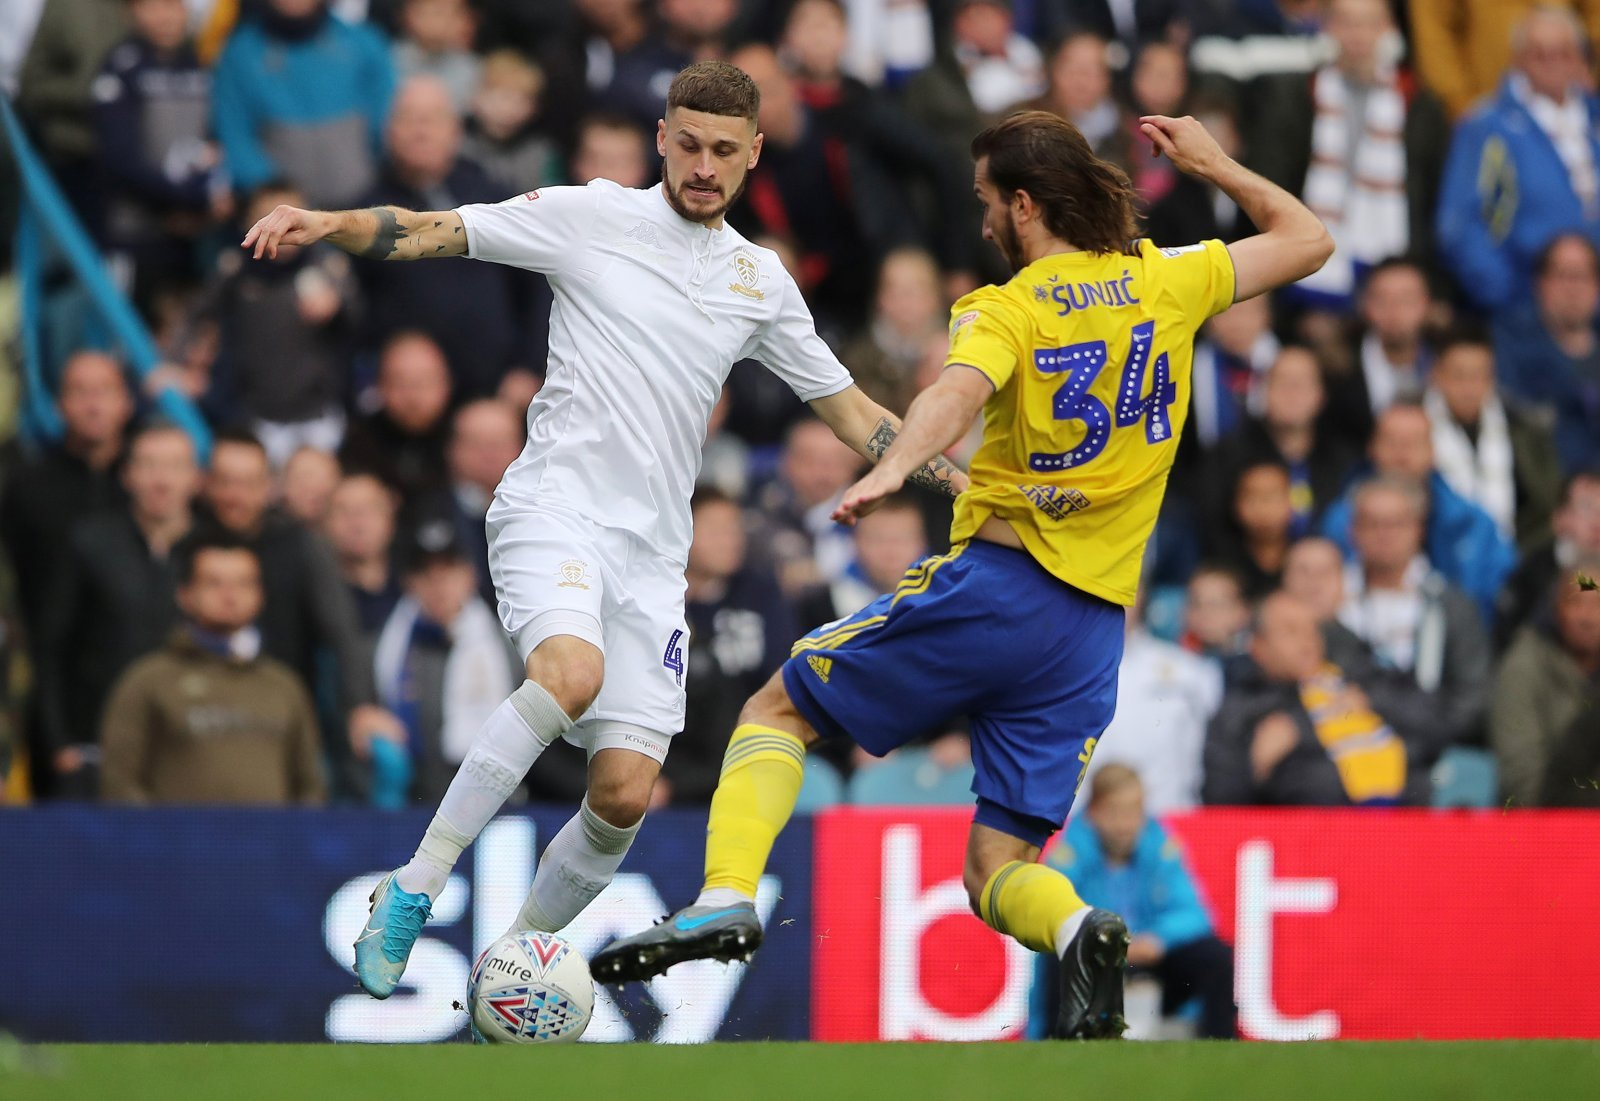 Leeds United: Mateusz Klich's performance deserved more recognition